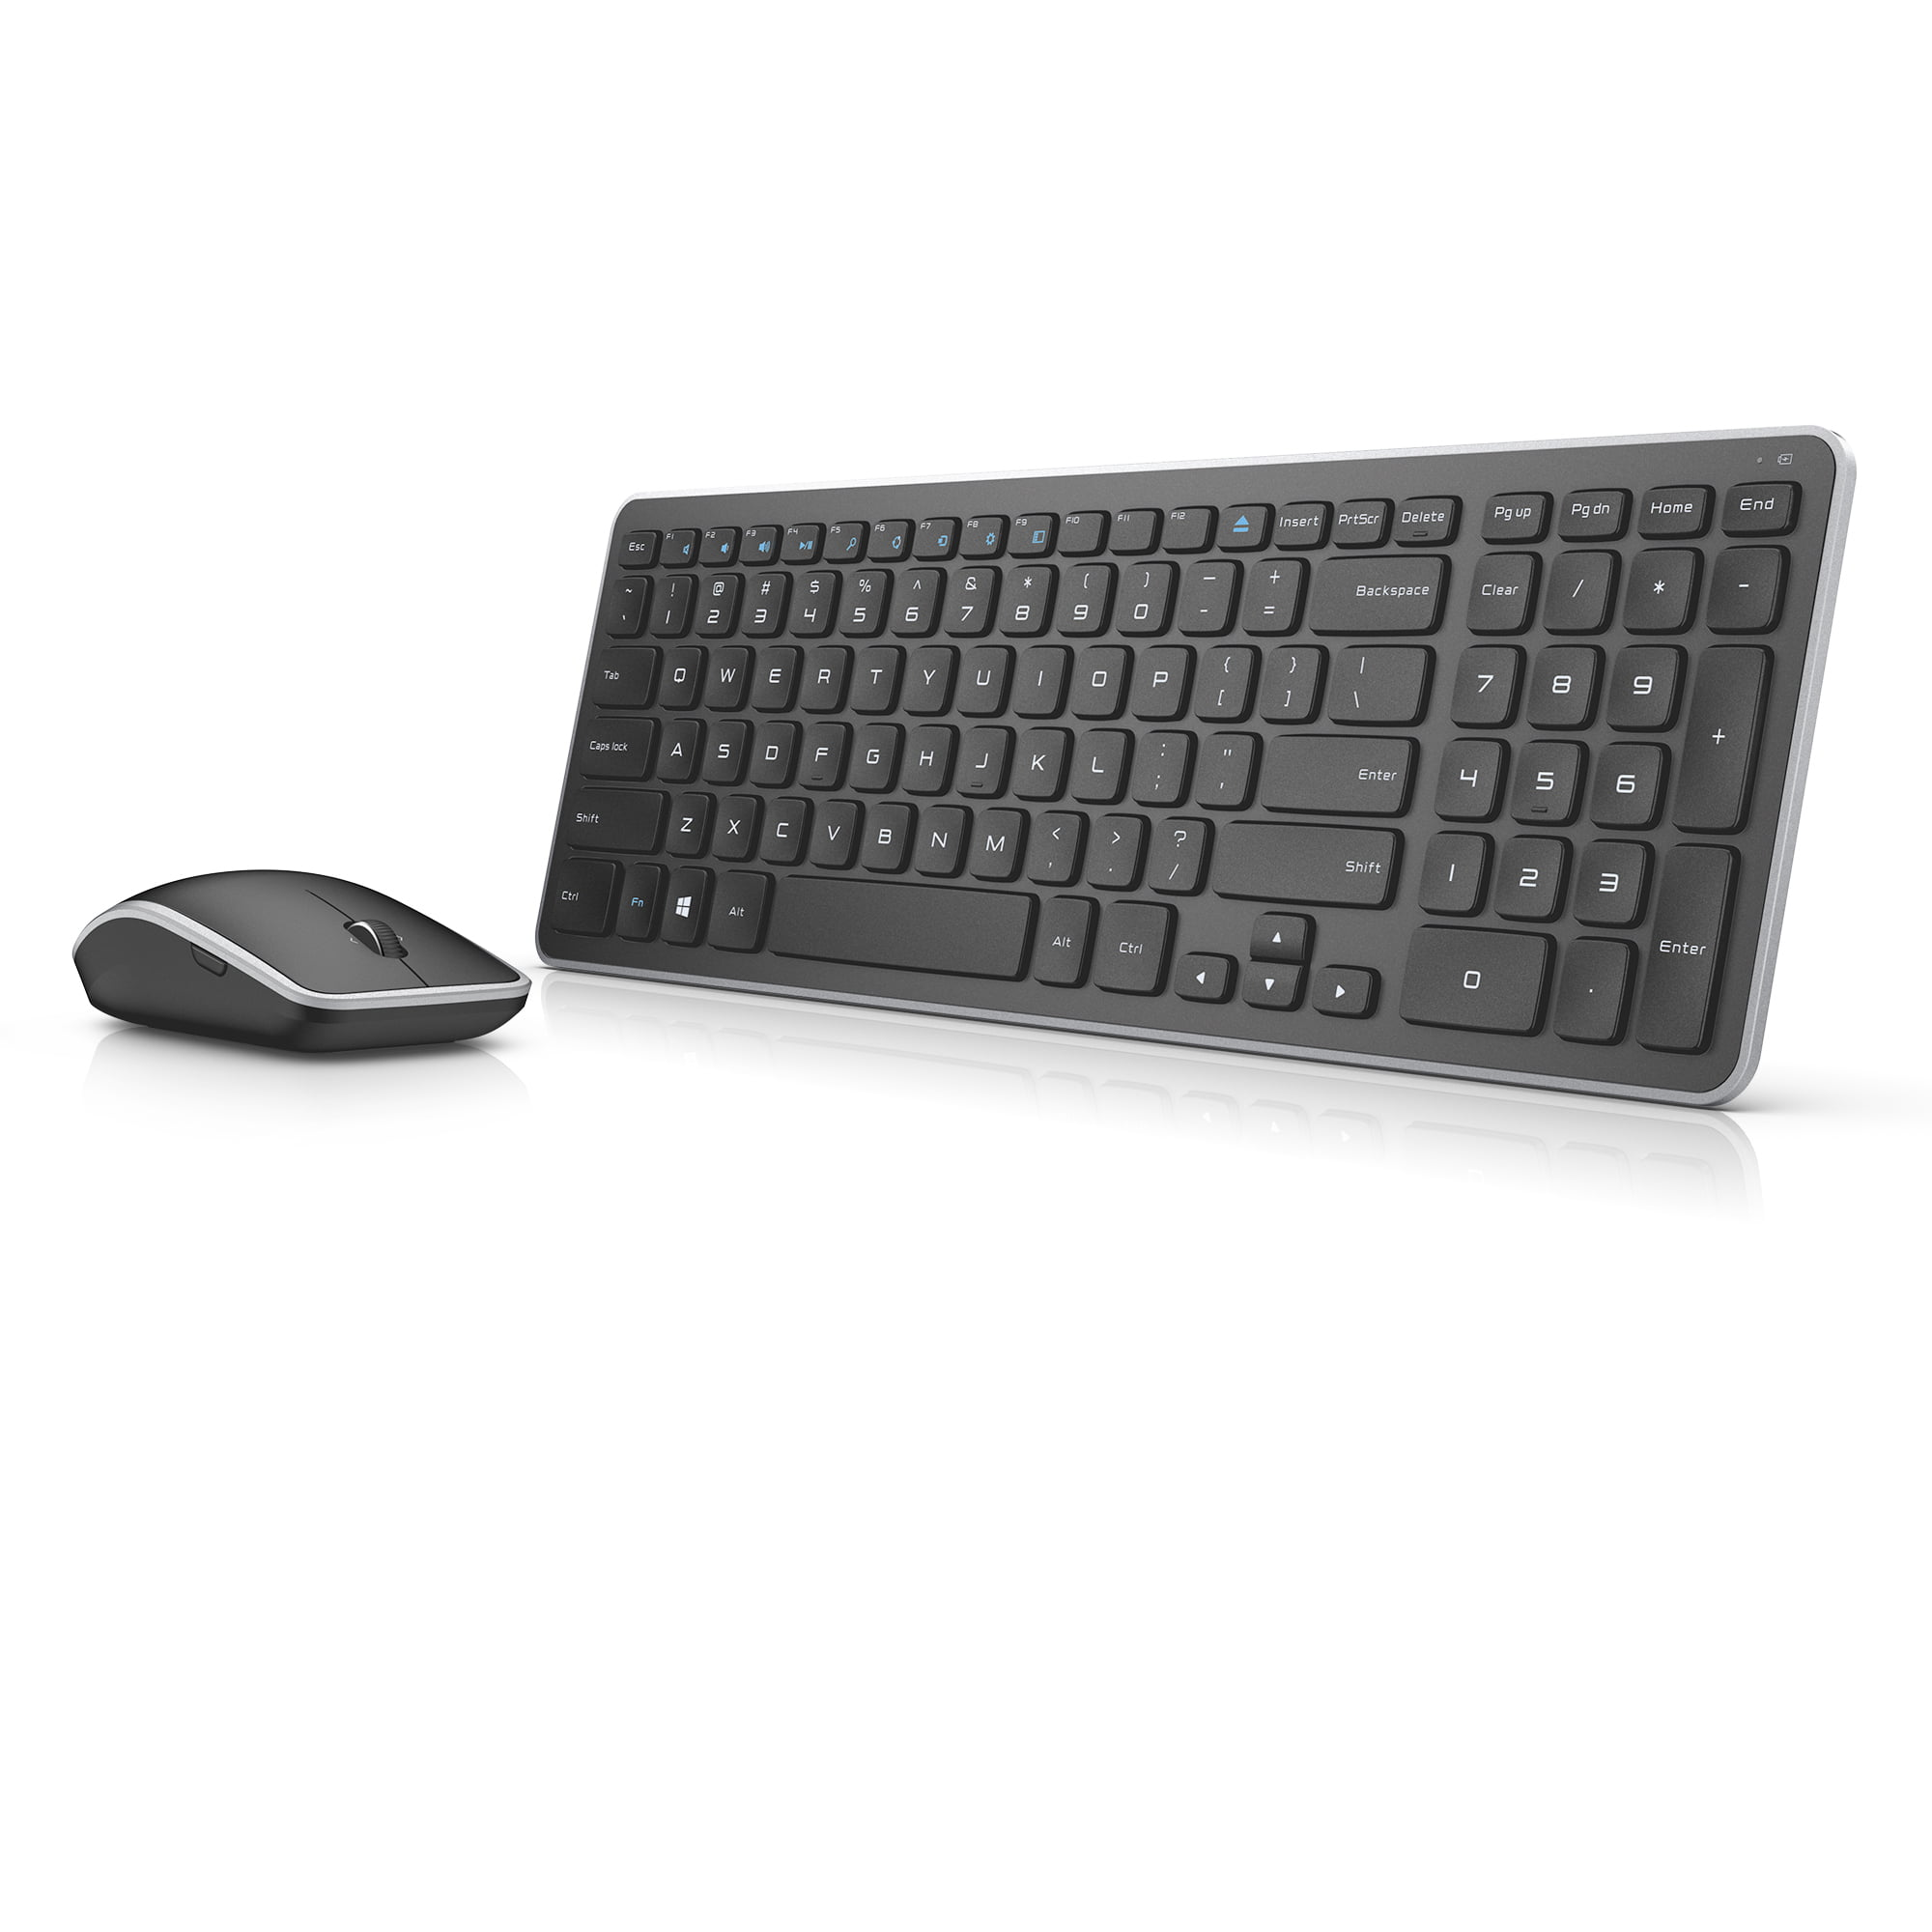 dell wireless keyboard mouse km714. Black Bedroom Furniture Sets. Home Design Ideas